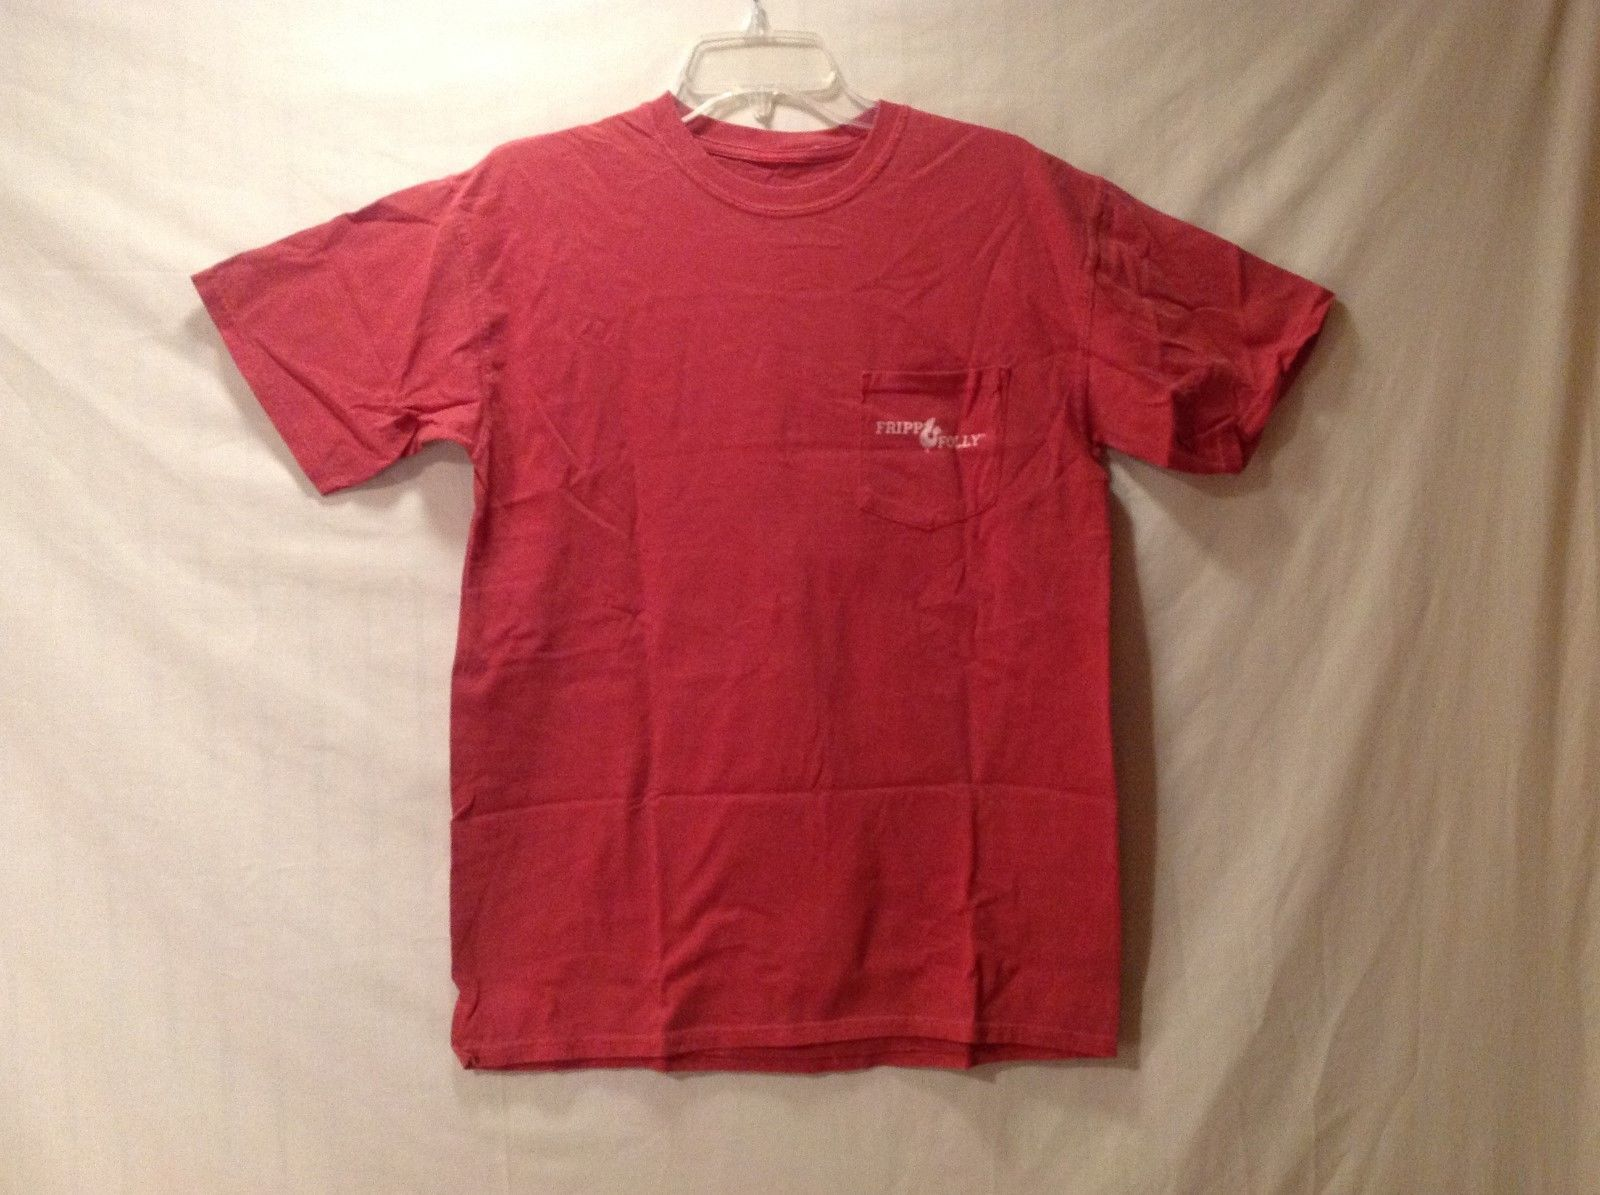 FRIPP FOLLY Light Red T-shirt Size Medium NEW!